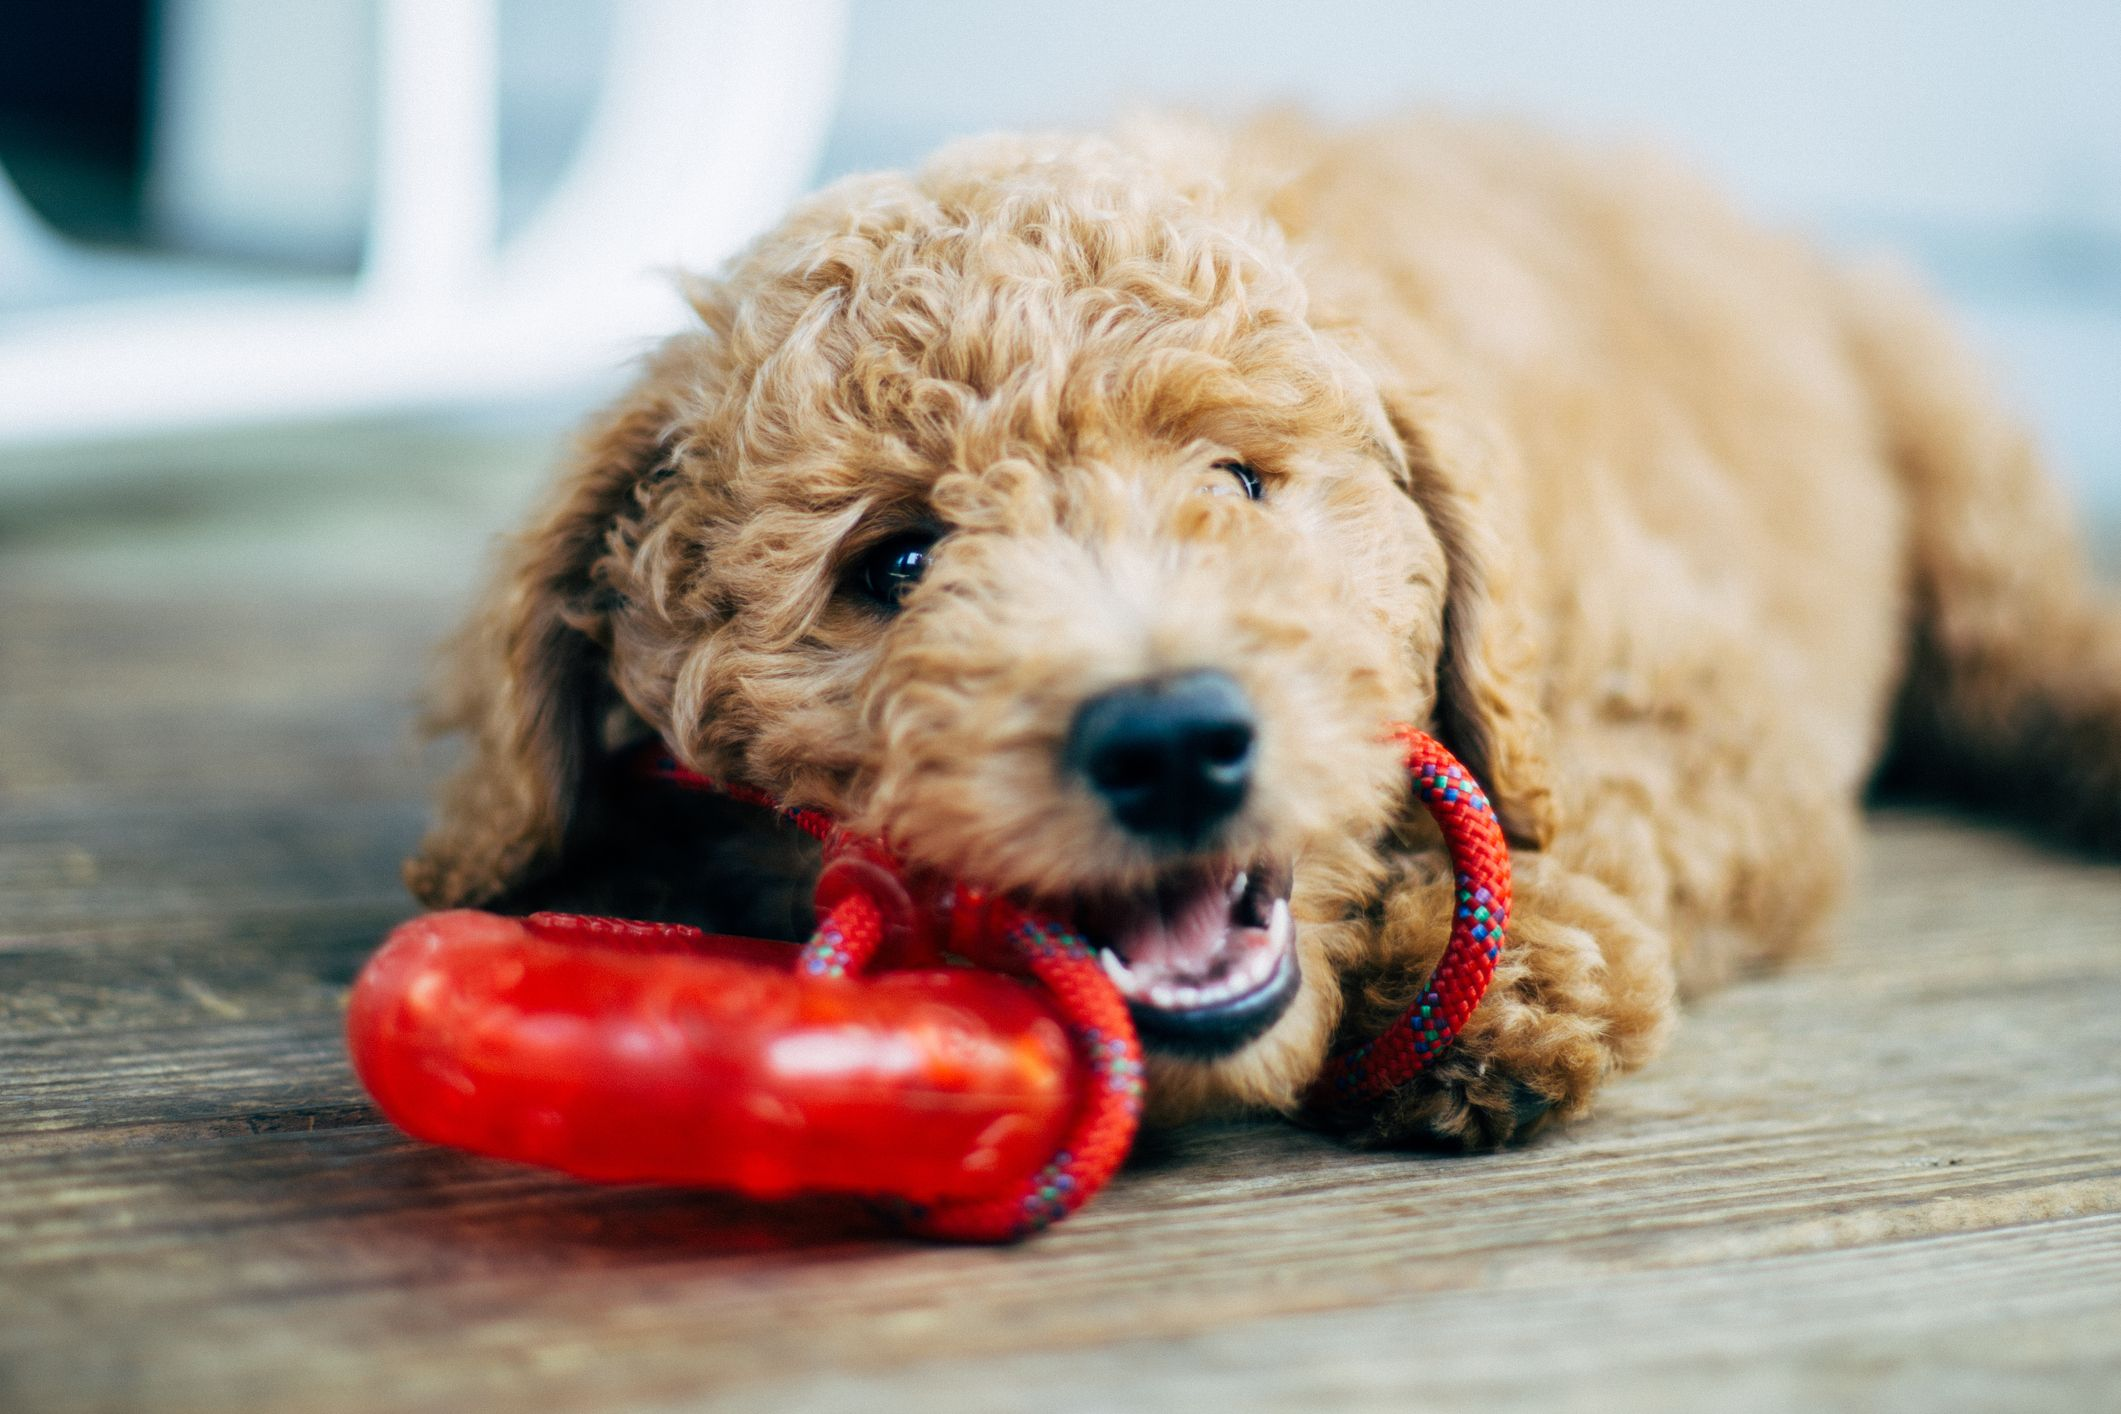 15 indestructible dog toys for aggressive chewers